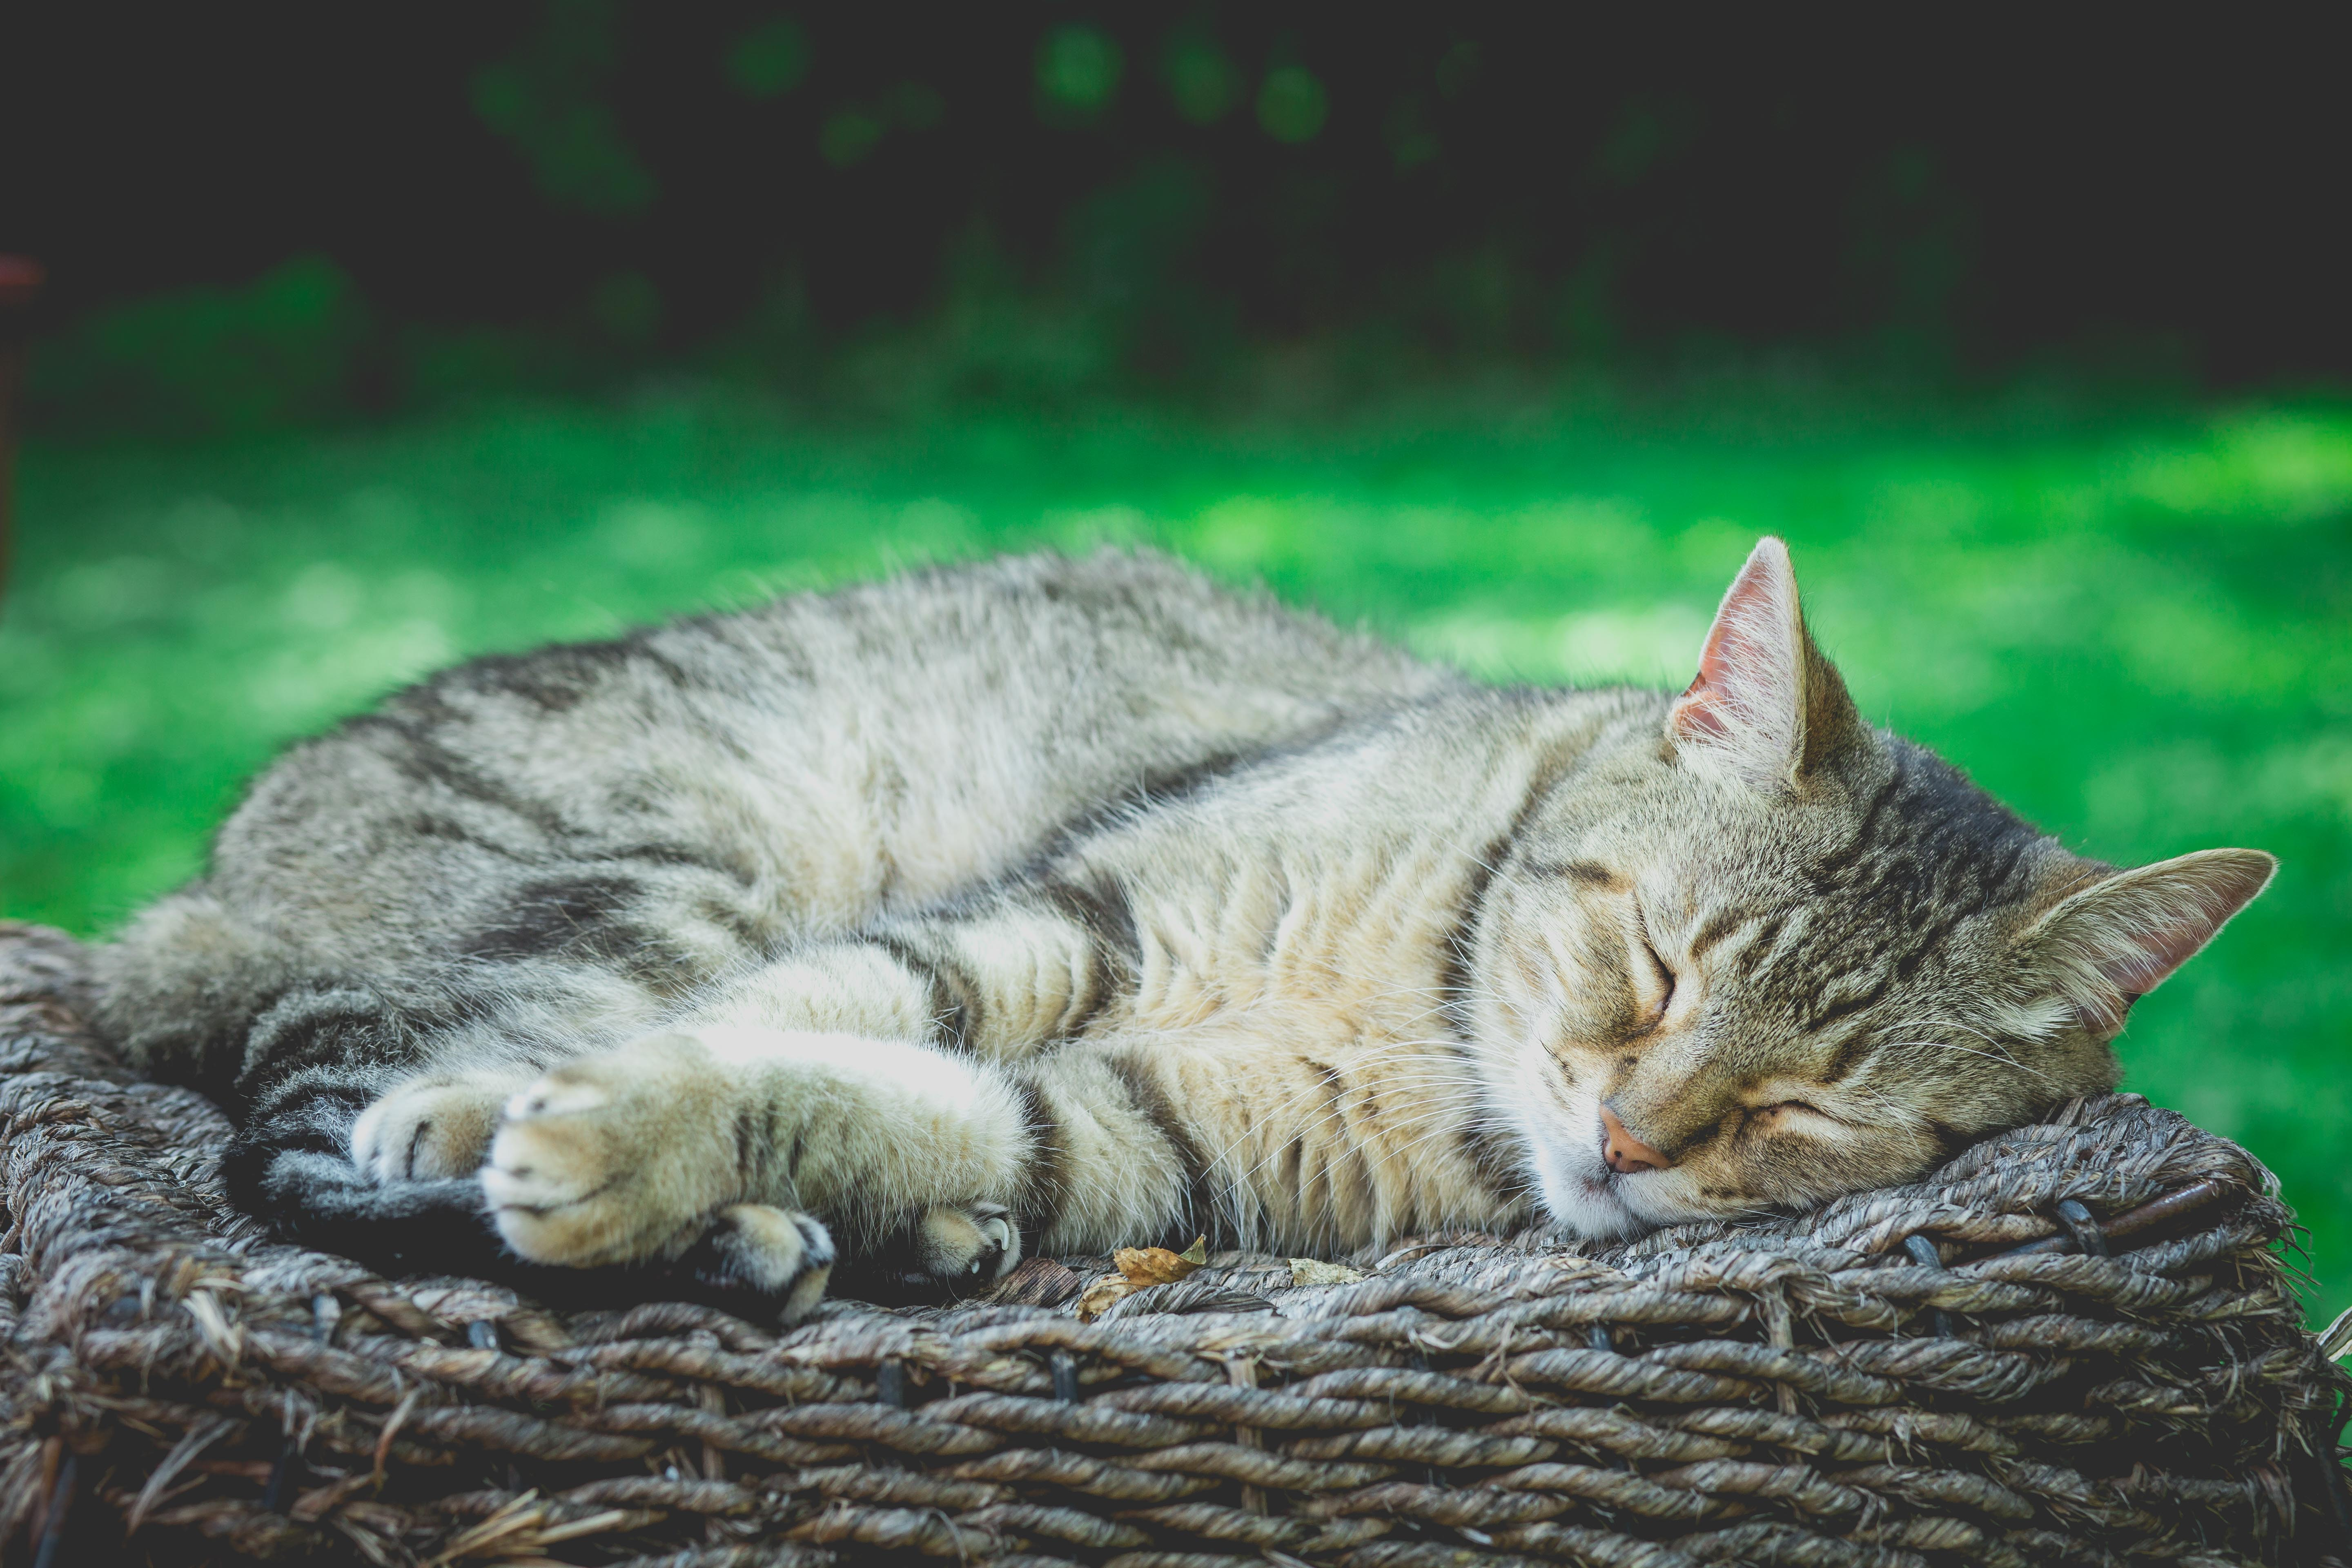 20 cat pictures amp images download free photos on unsplash